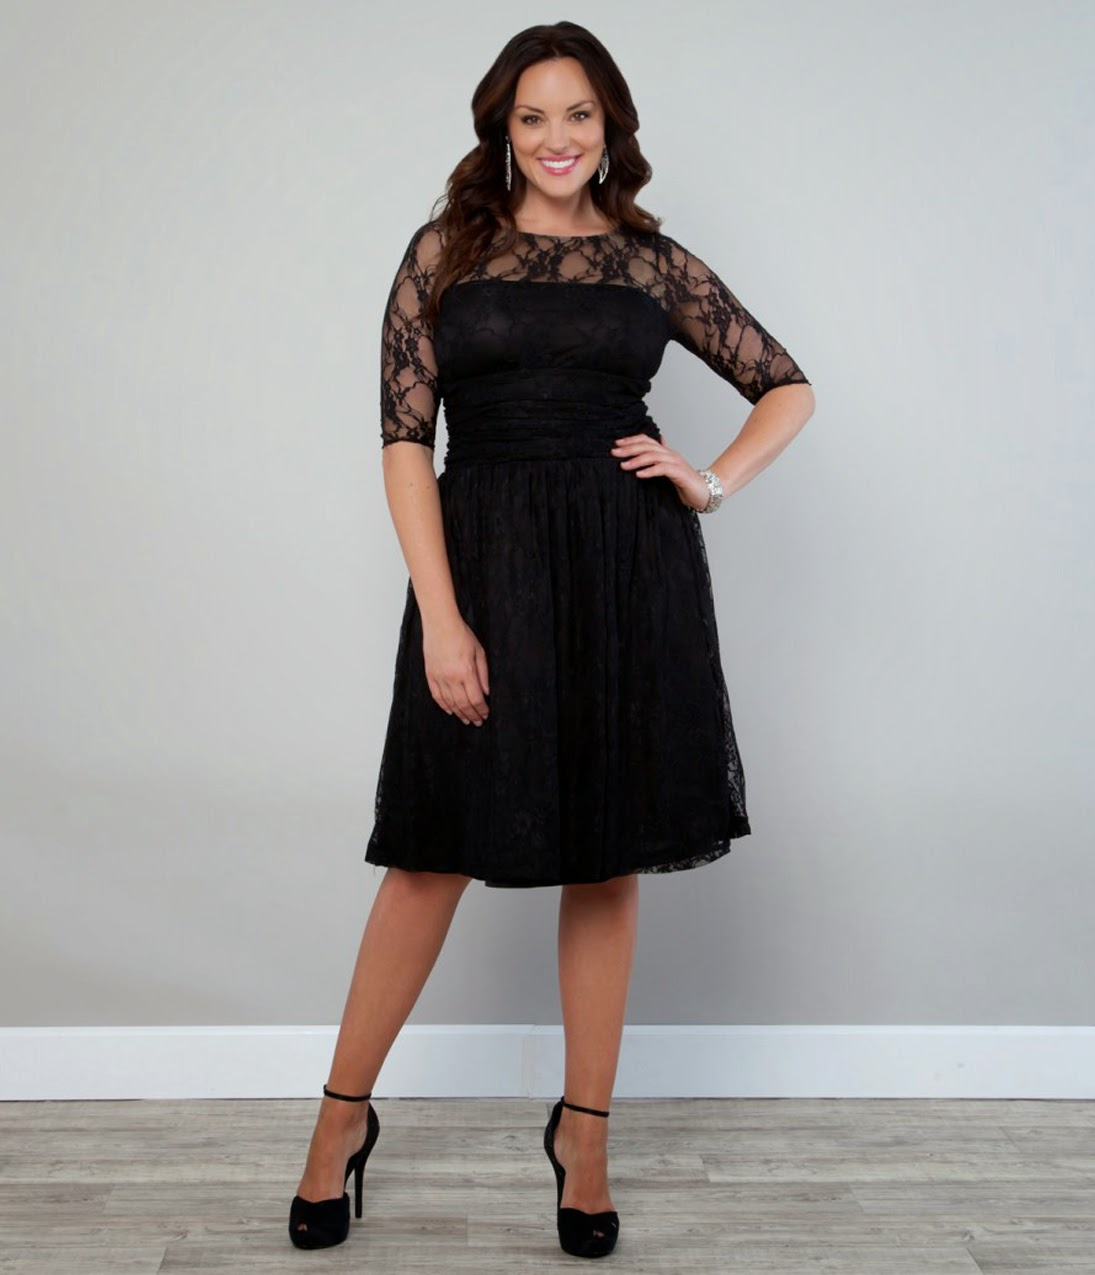 Black Dresses For Plus Size Women